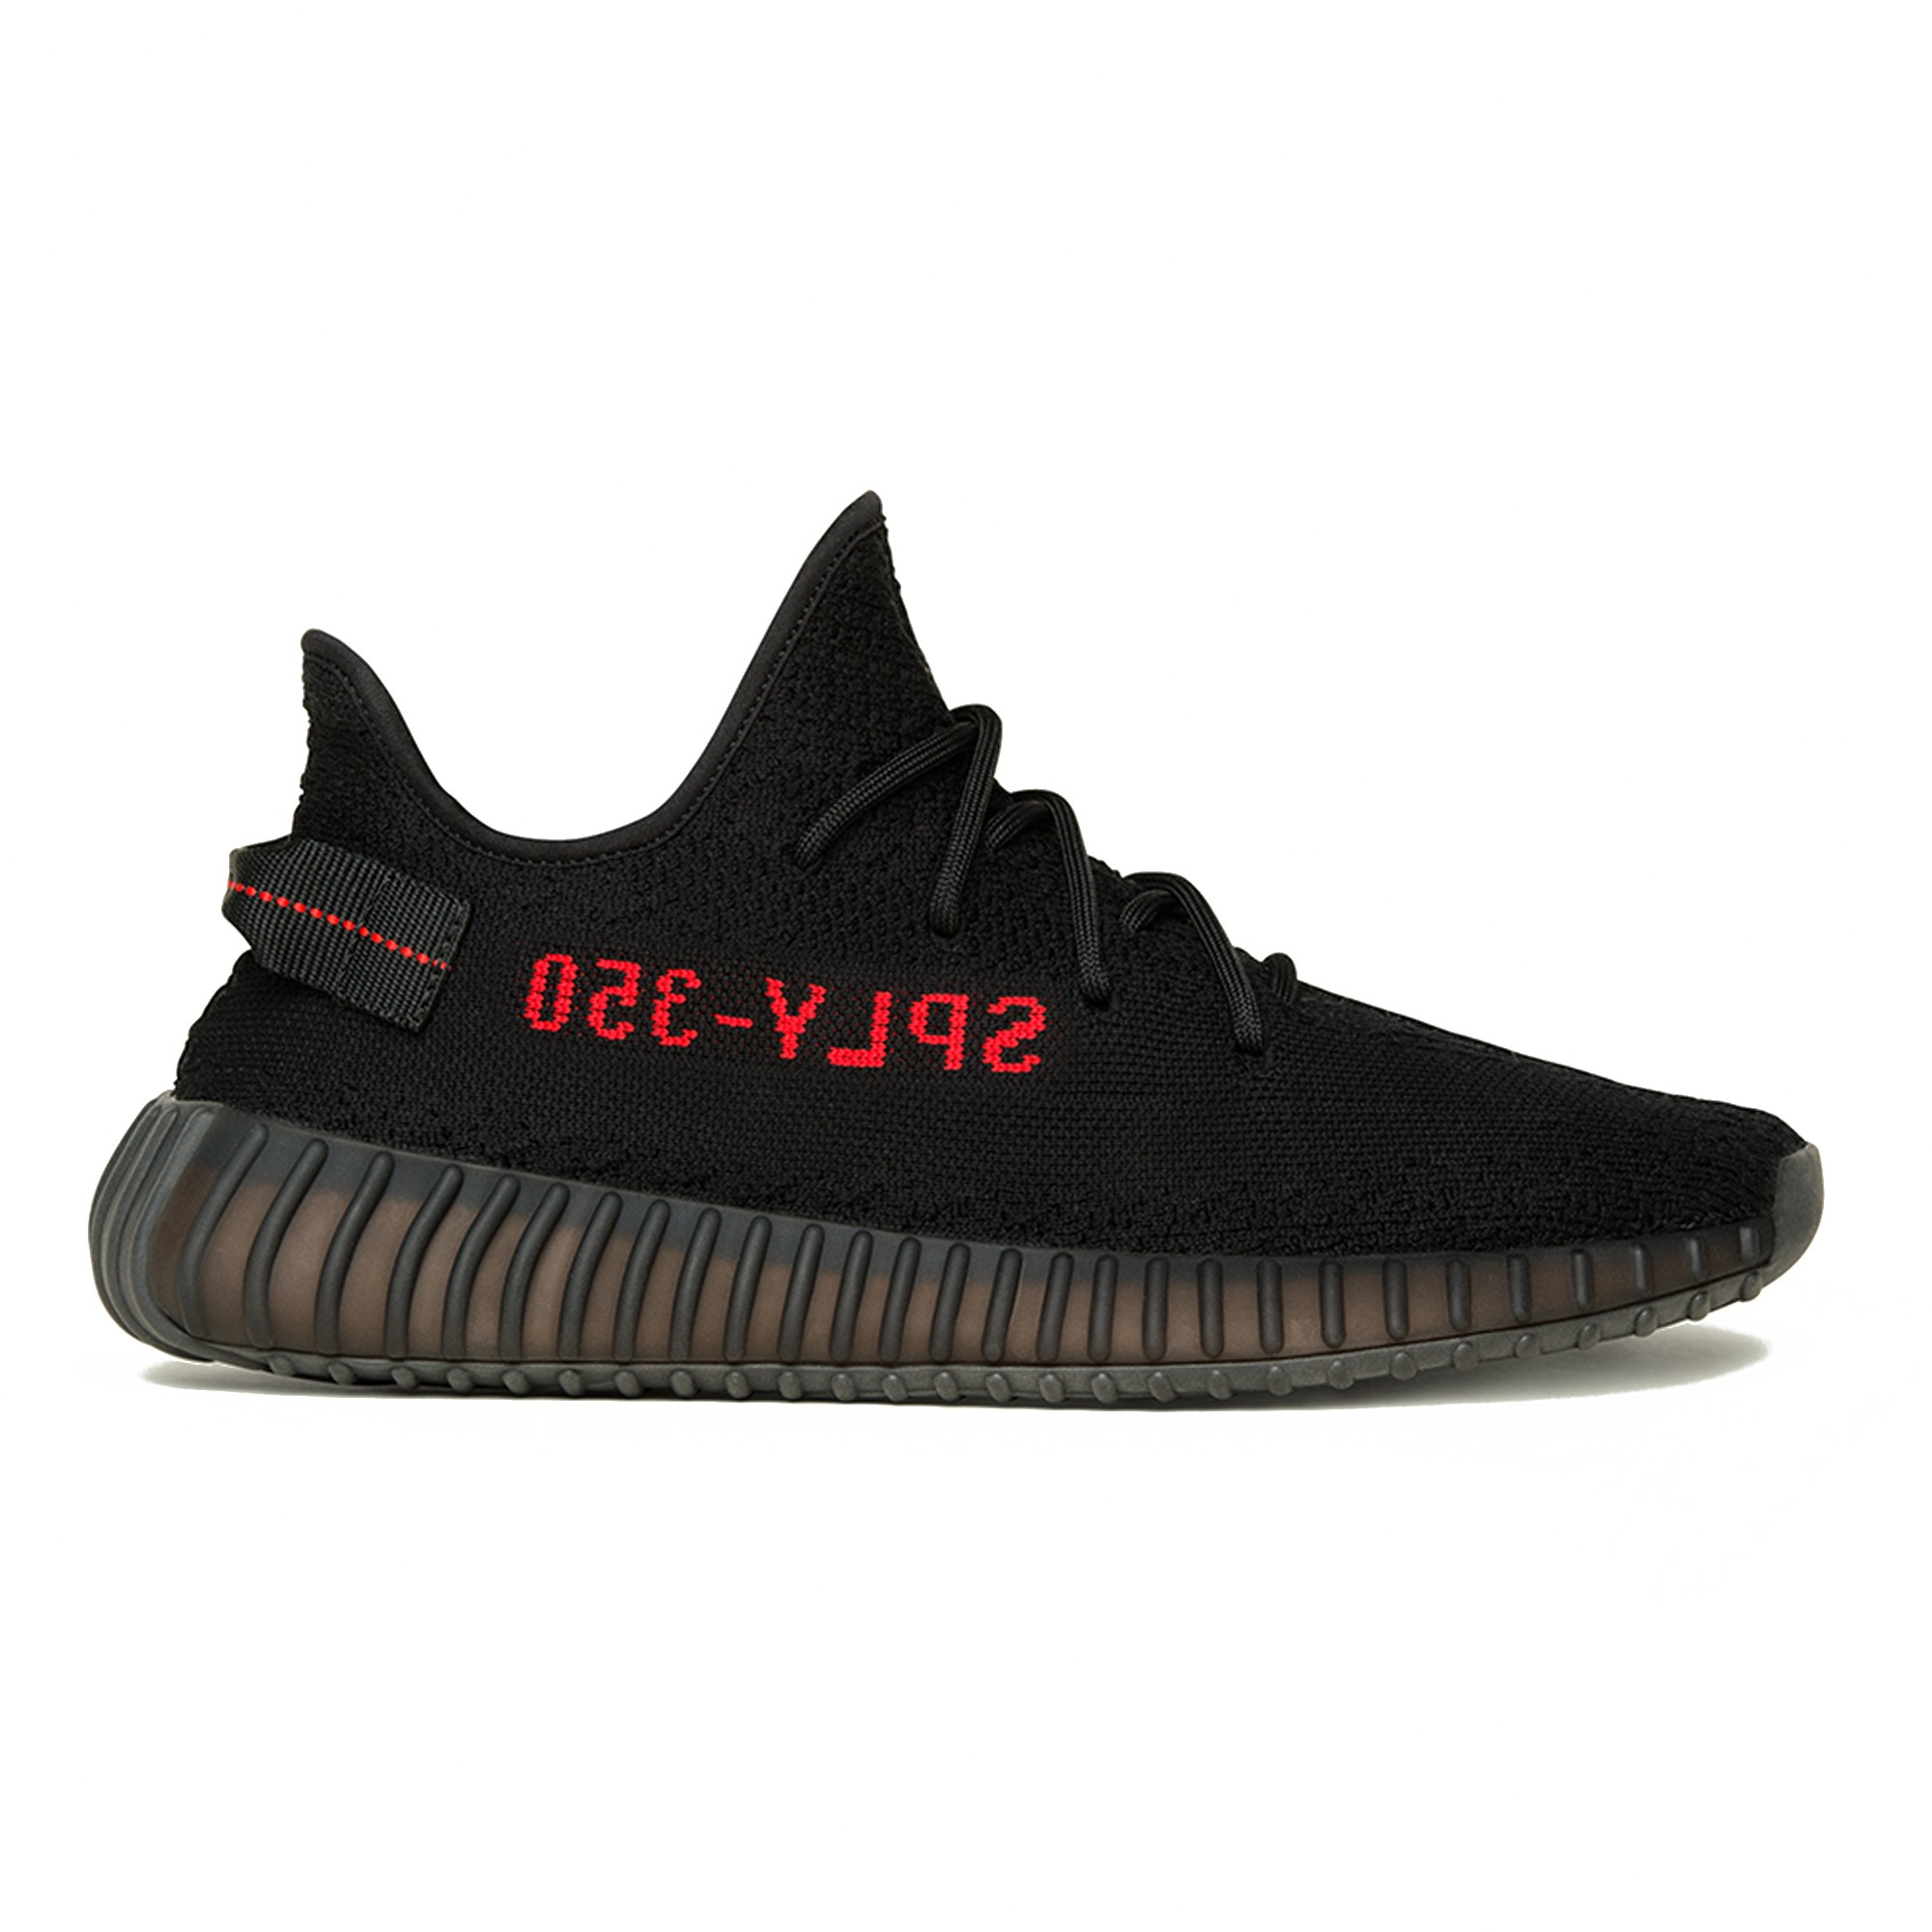 Adidas Yeezy Boost 350 For Sale Uk